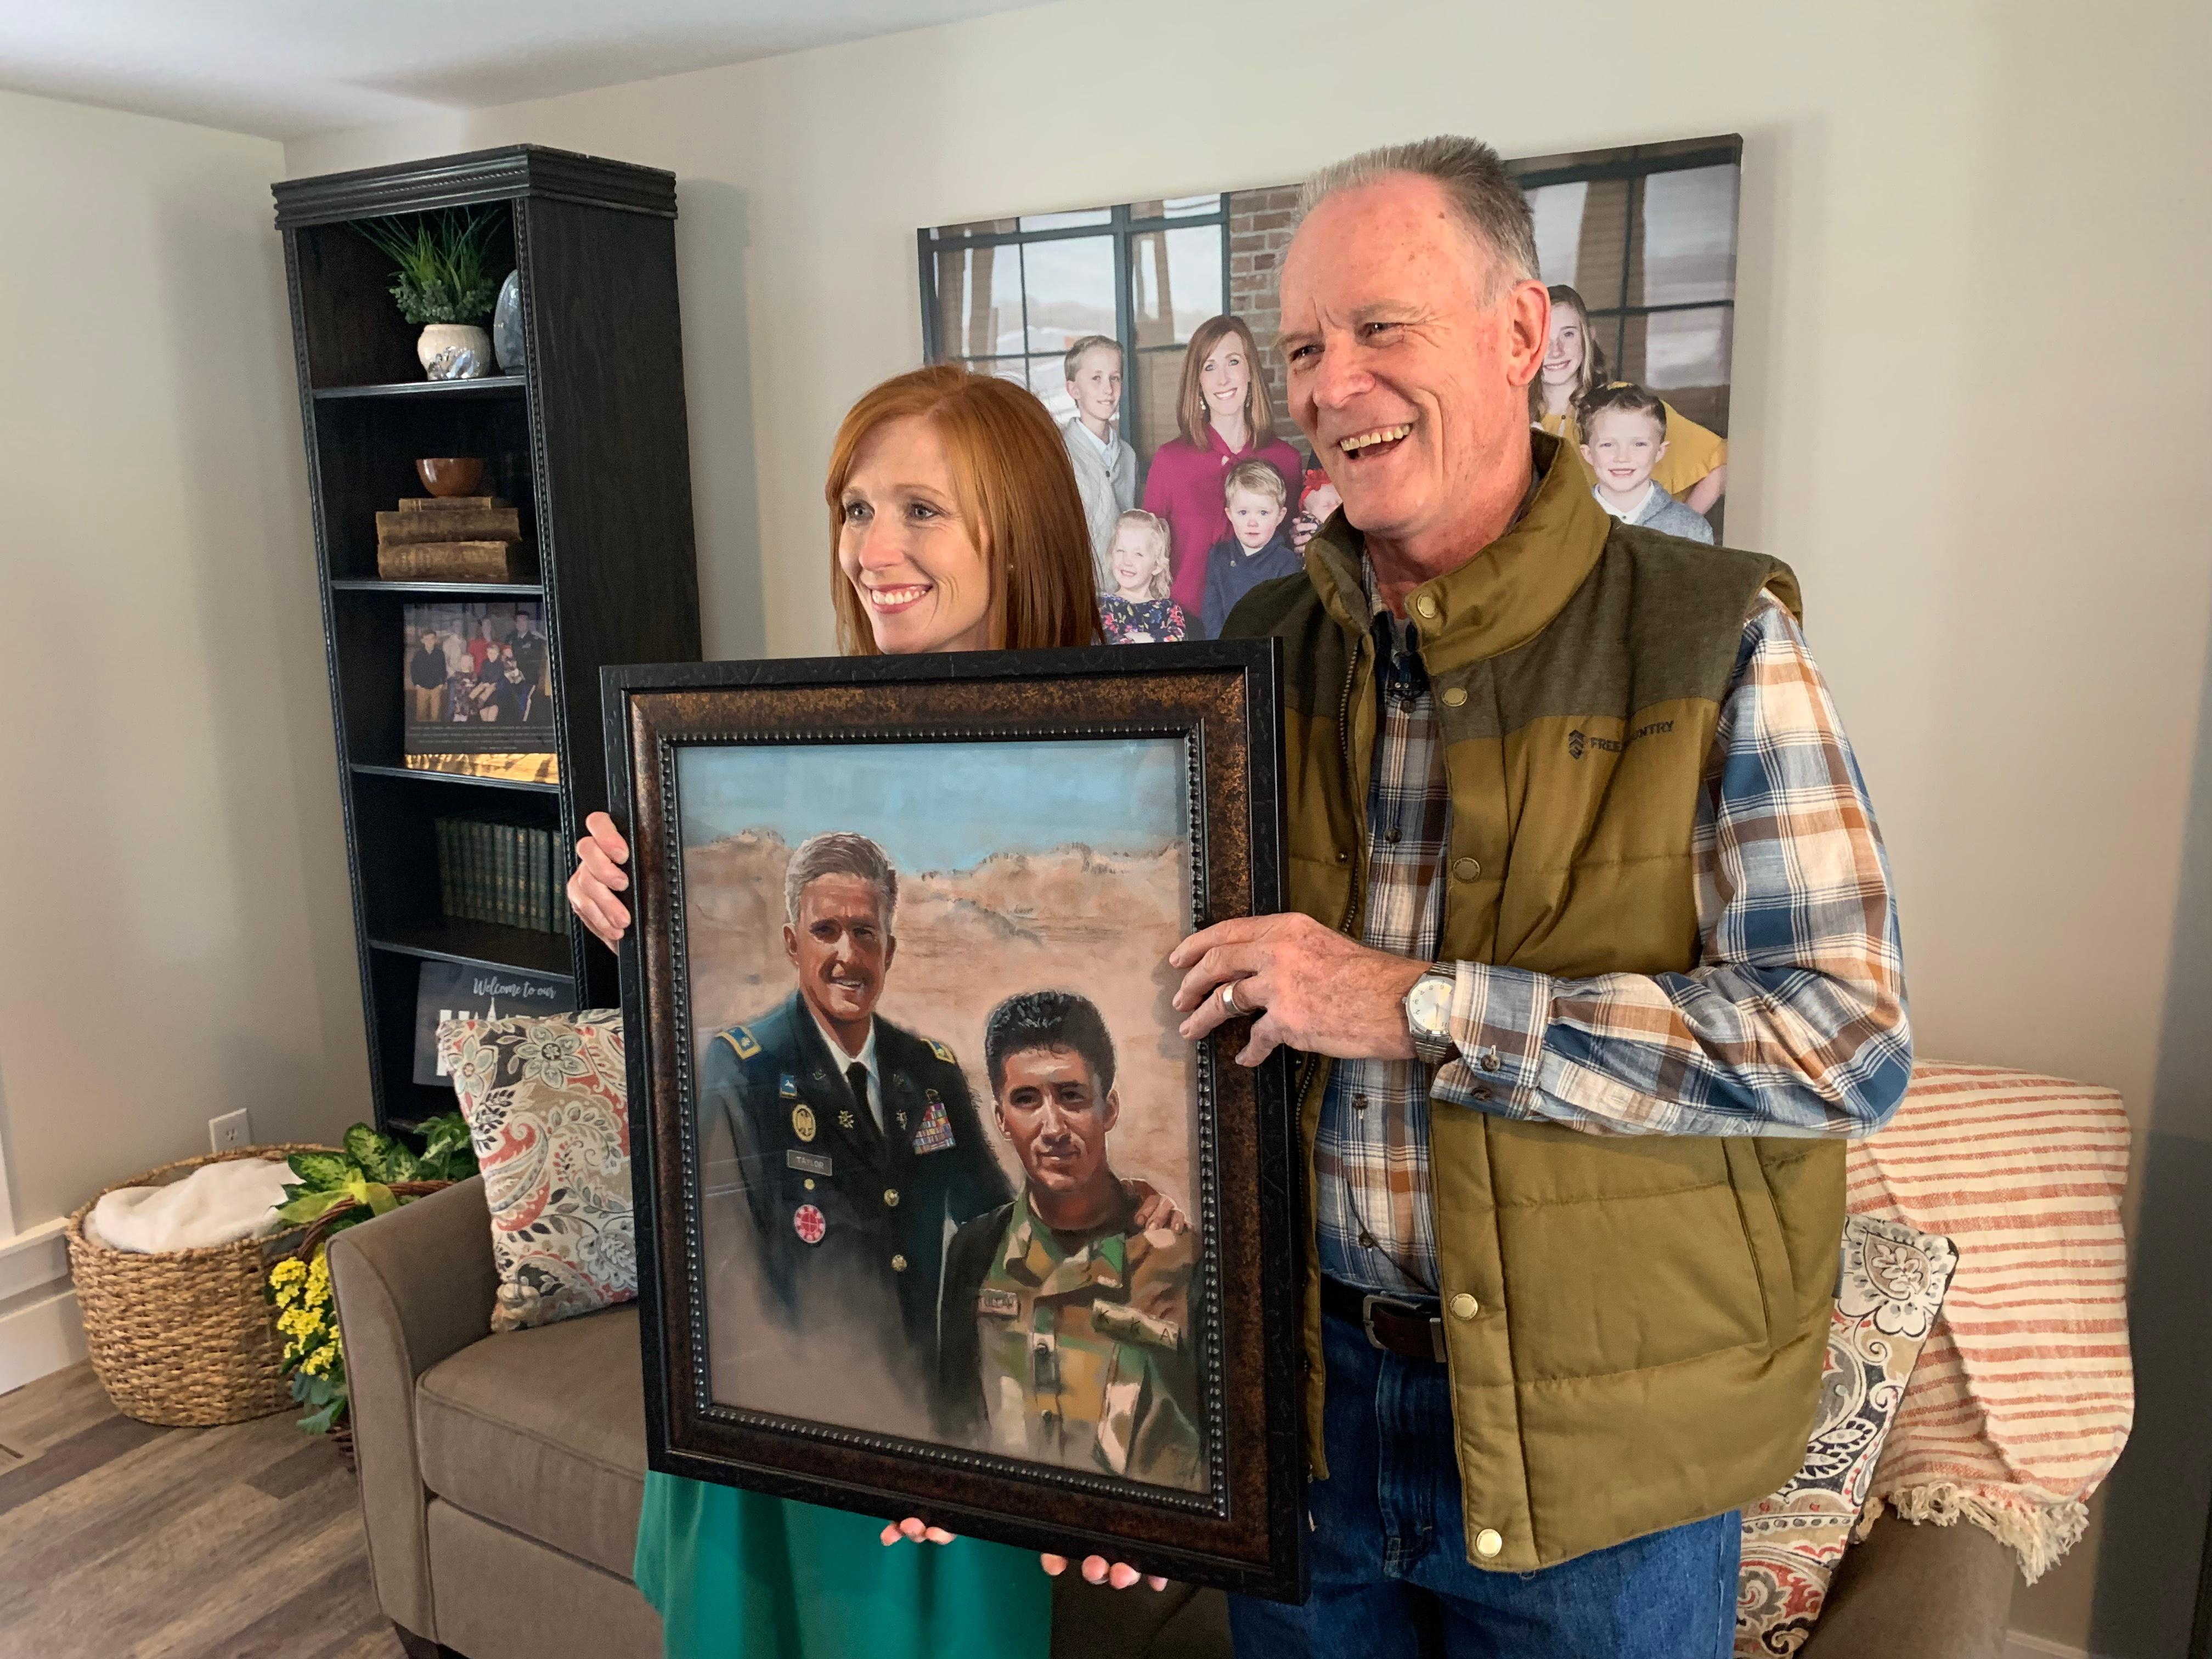 Utah artist J.R. Johansen hand-delivered a custom portrait of Major Brent Taylor to his wife, Jennie, on Friday, November 16, 2018. (Photo: Dan Rascon / KUTV)